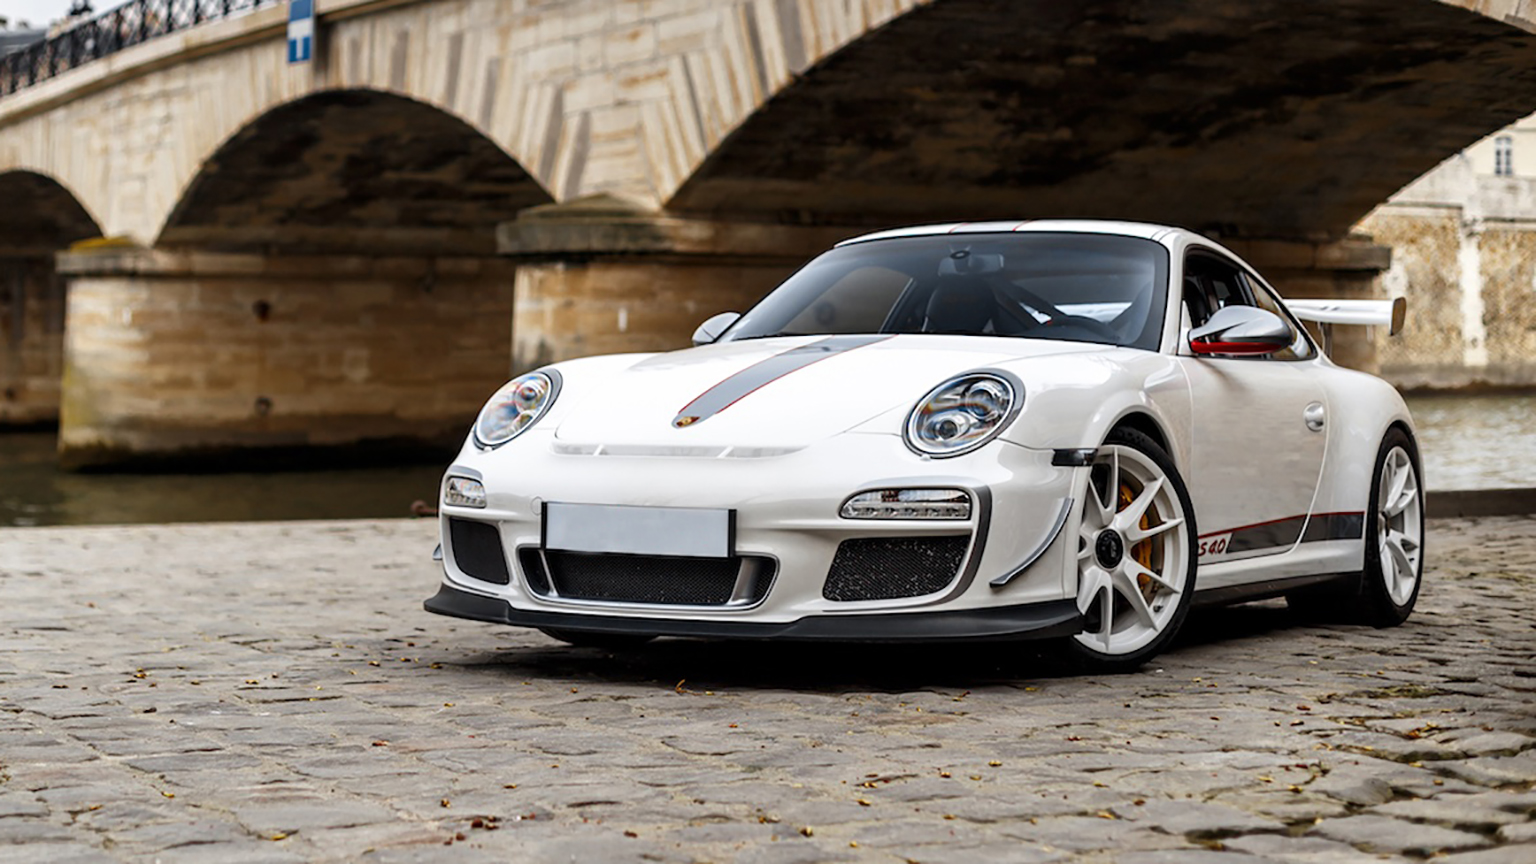 2012 Porsche 911 Gt3a Original Edited Copy